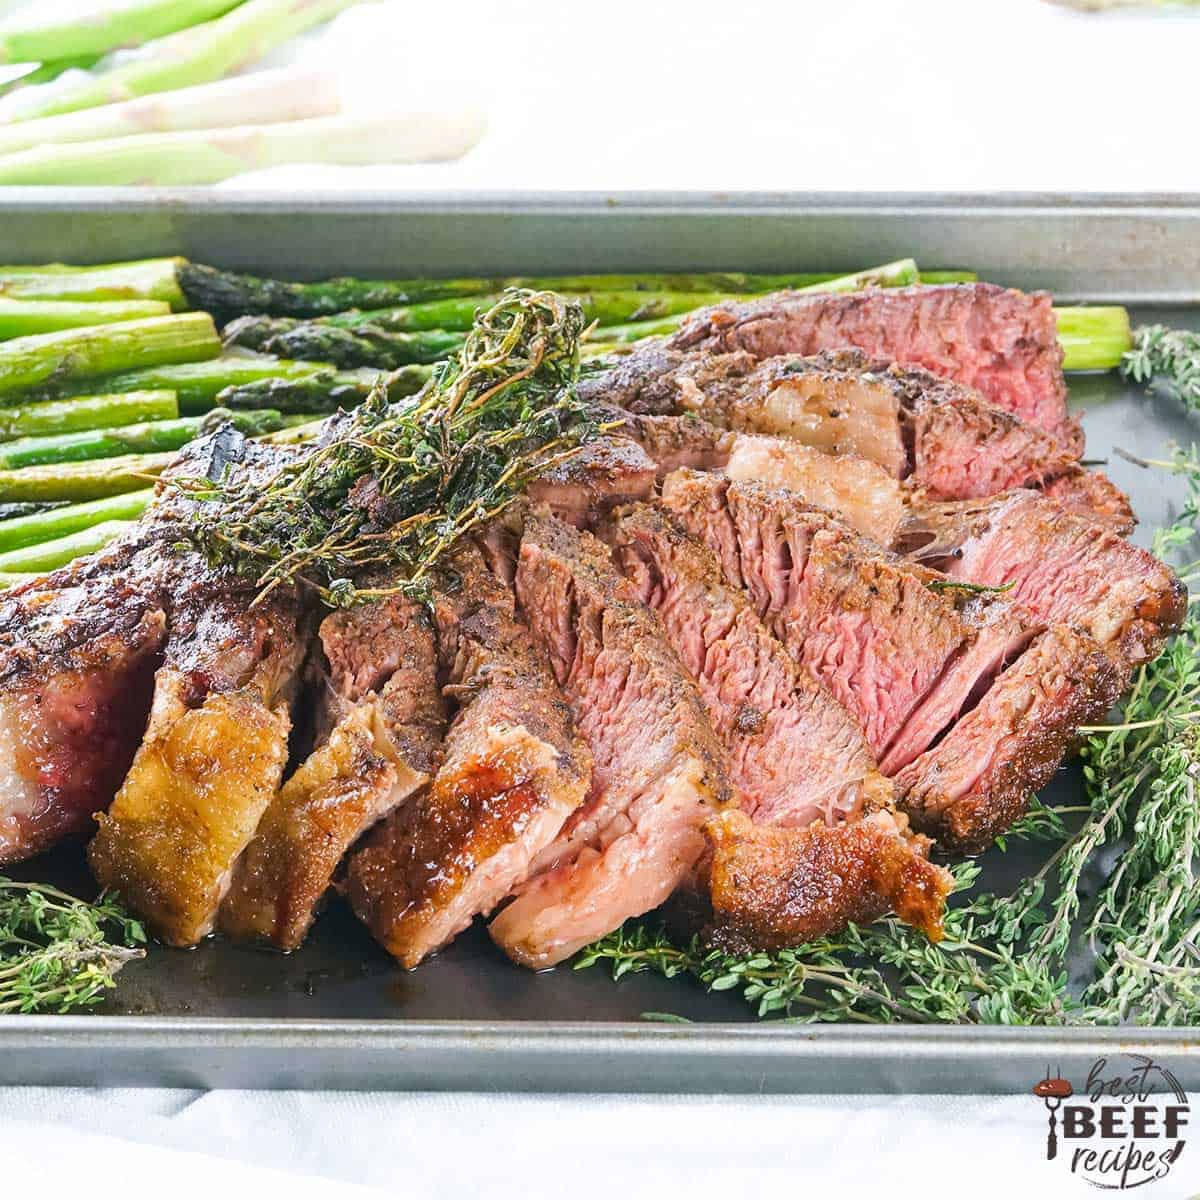 Sliced tomahawk steak on a tray with asparagus and thyme